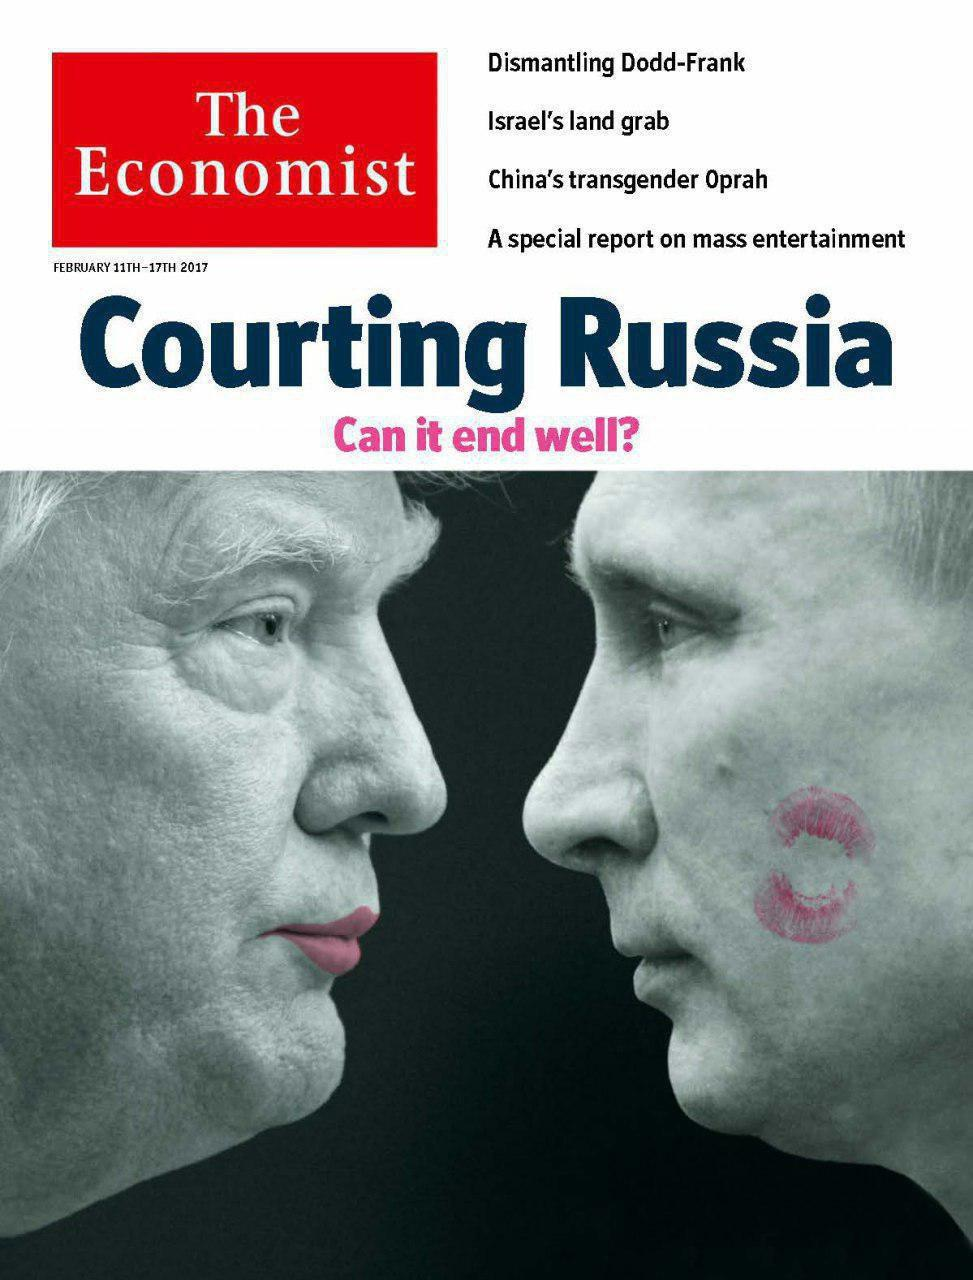 Trump's Kiss on Putin's Cheek in The Economist's Latest Cover